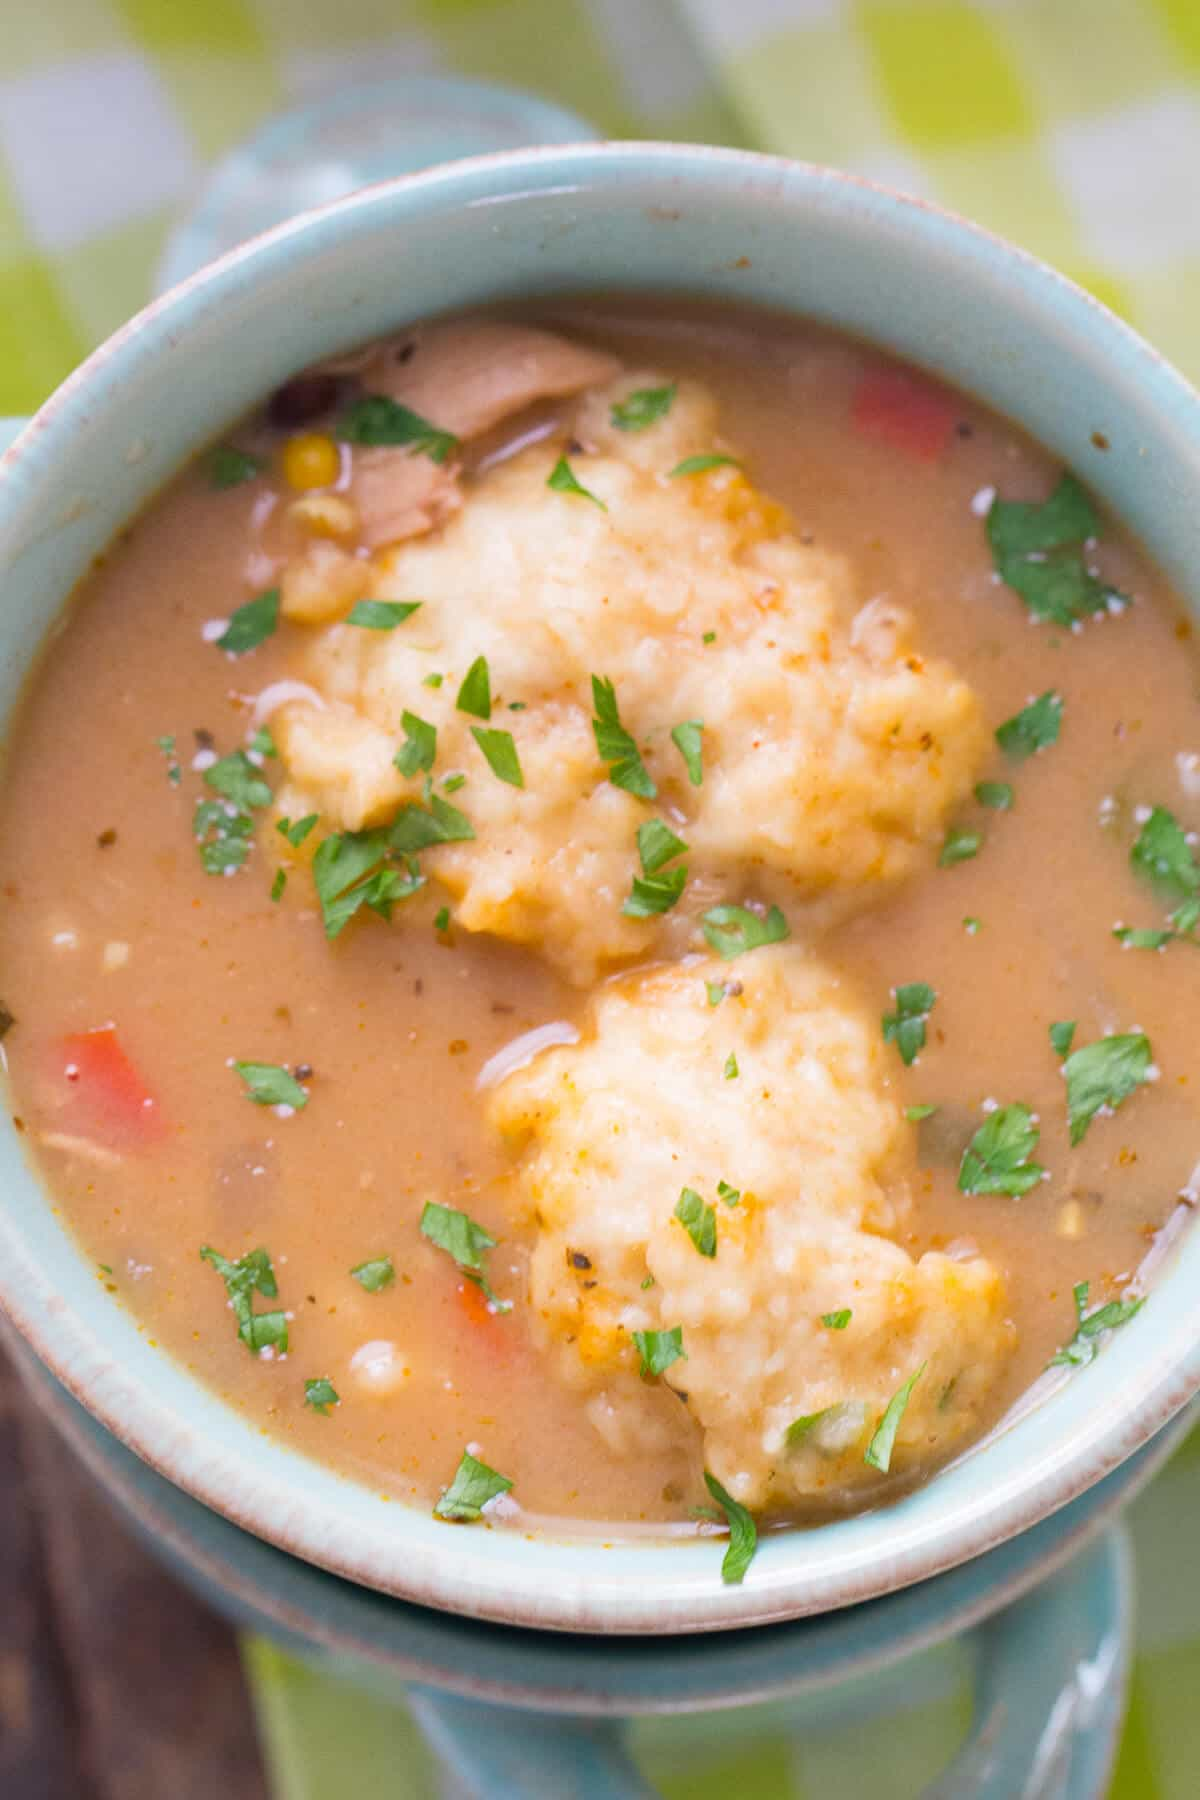 Chicken and dumplings get a modern update! This Tex-Mex version has lots of bold flavor!